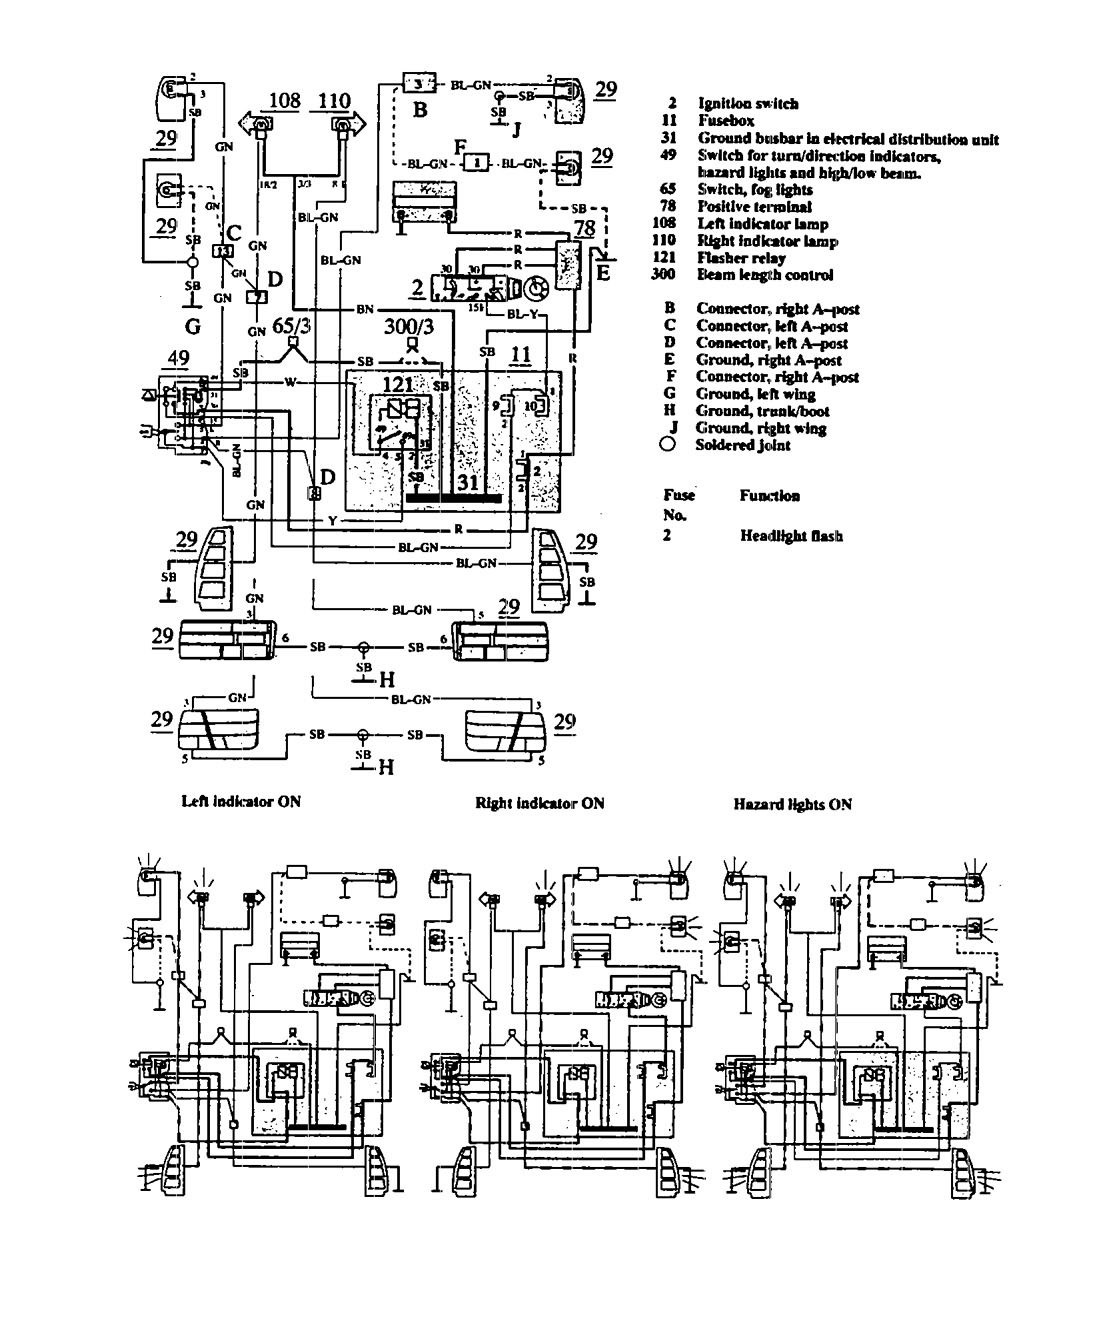 1992 volvo 740 wiring diagram venn of animal cell and plant 1991 diagrams turn signal lamp